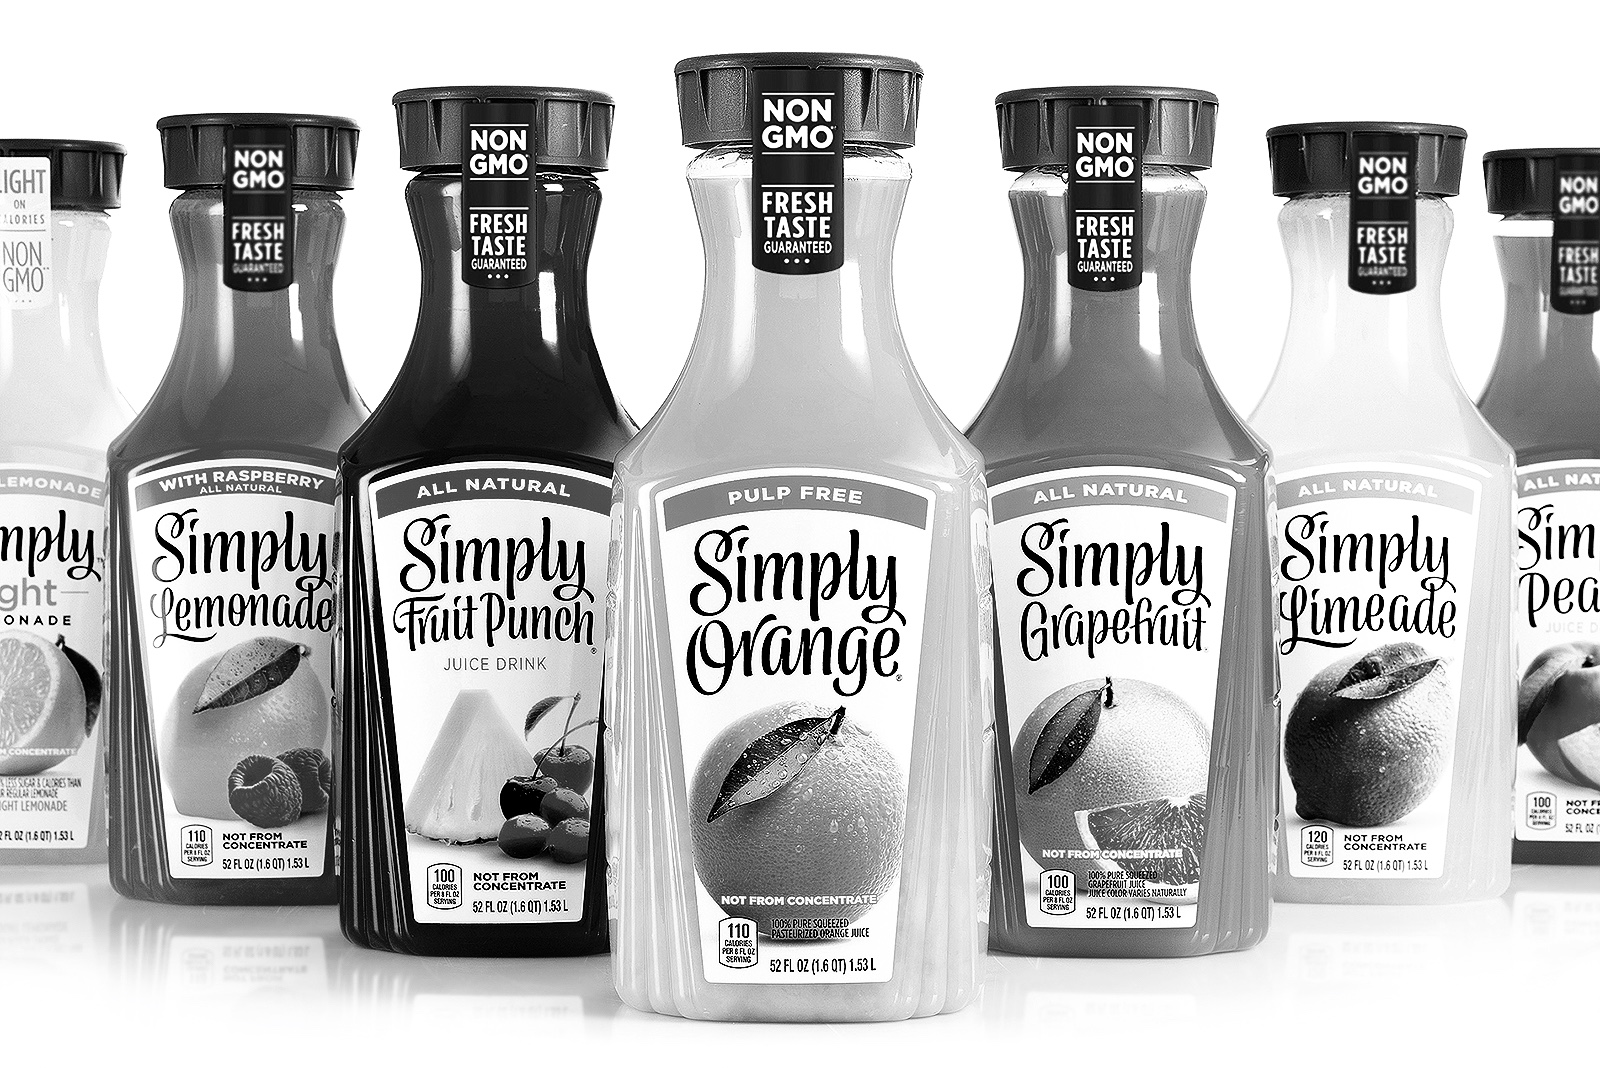 If Simply were to innovate, what would they look like today? - Rebrand, Package Redesign, and Line Extension